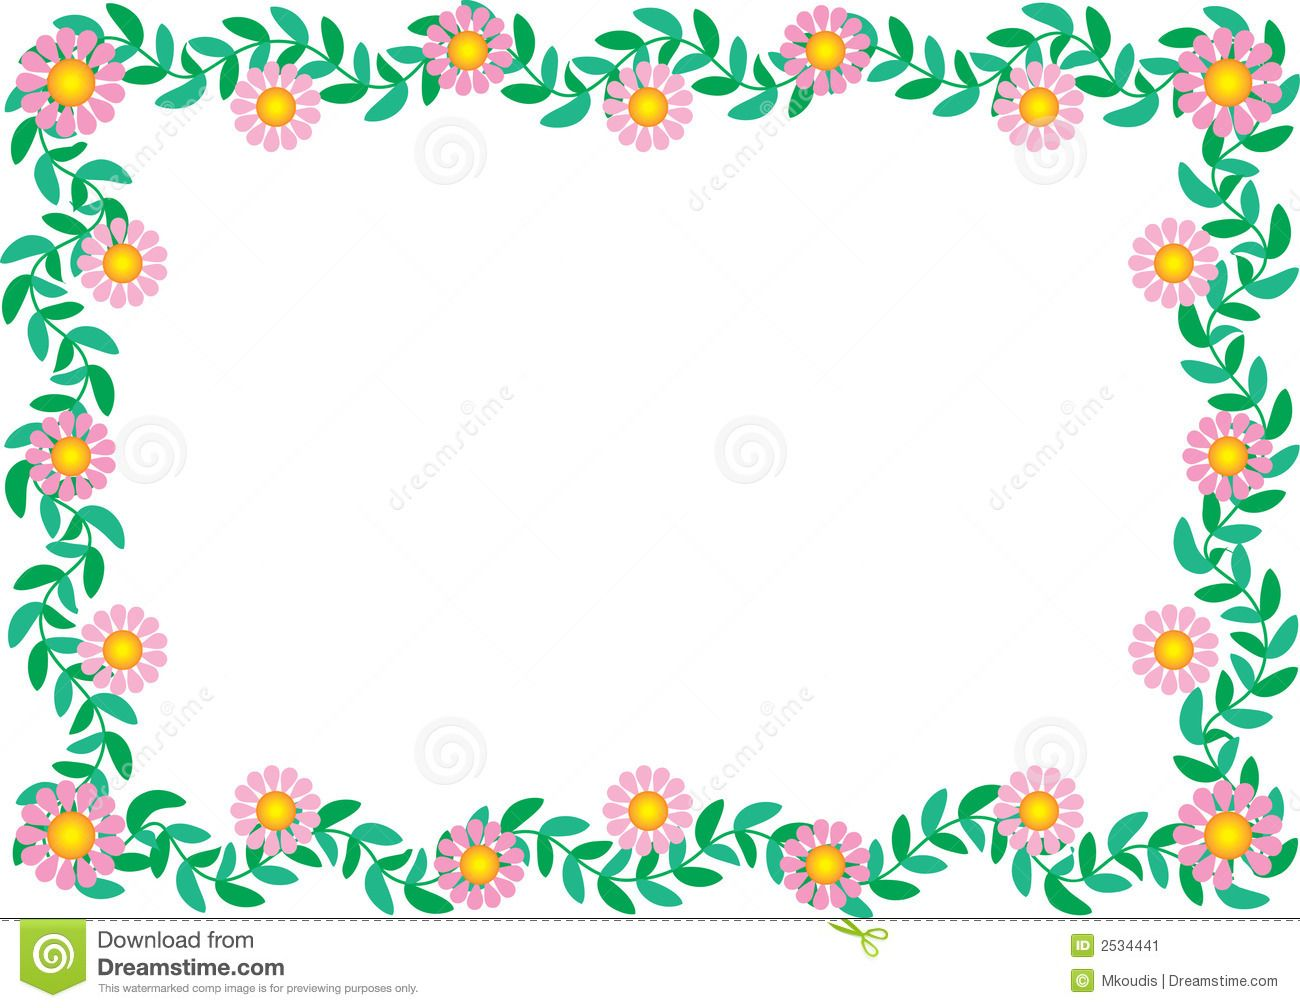 Daisy border download from over 30 million high quality stock daisy border download from over 30 million high quality stock photos images vectors sign up for free today image 2534441 izmirmasajfo